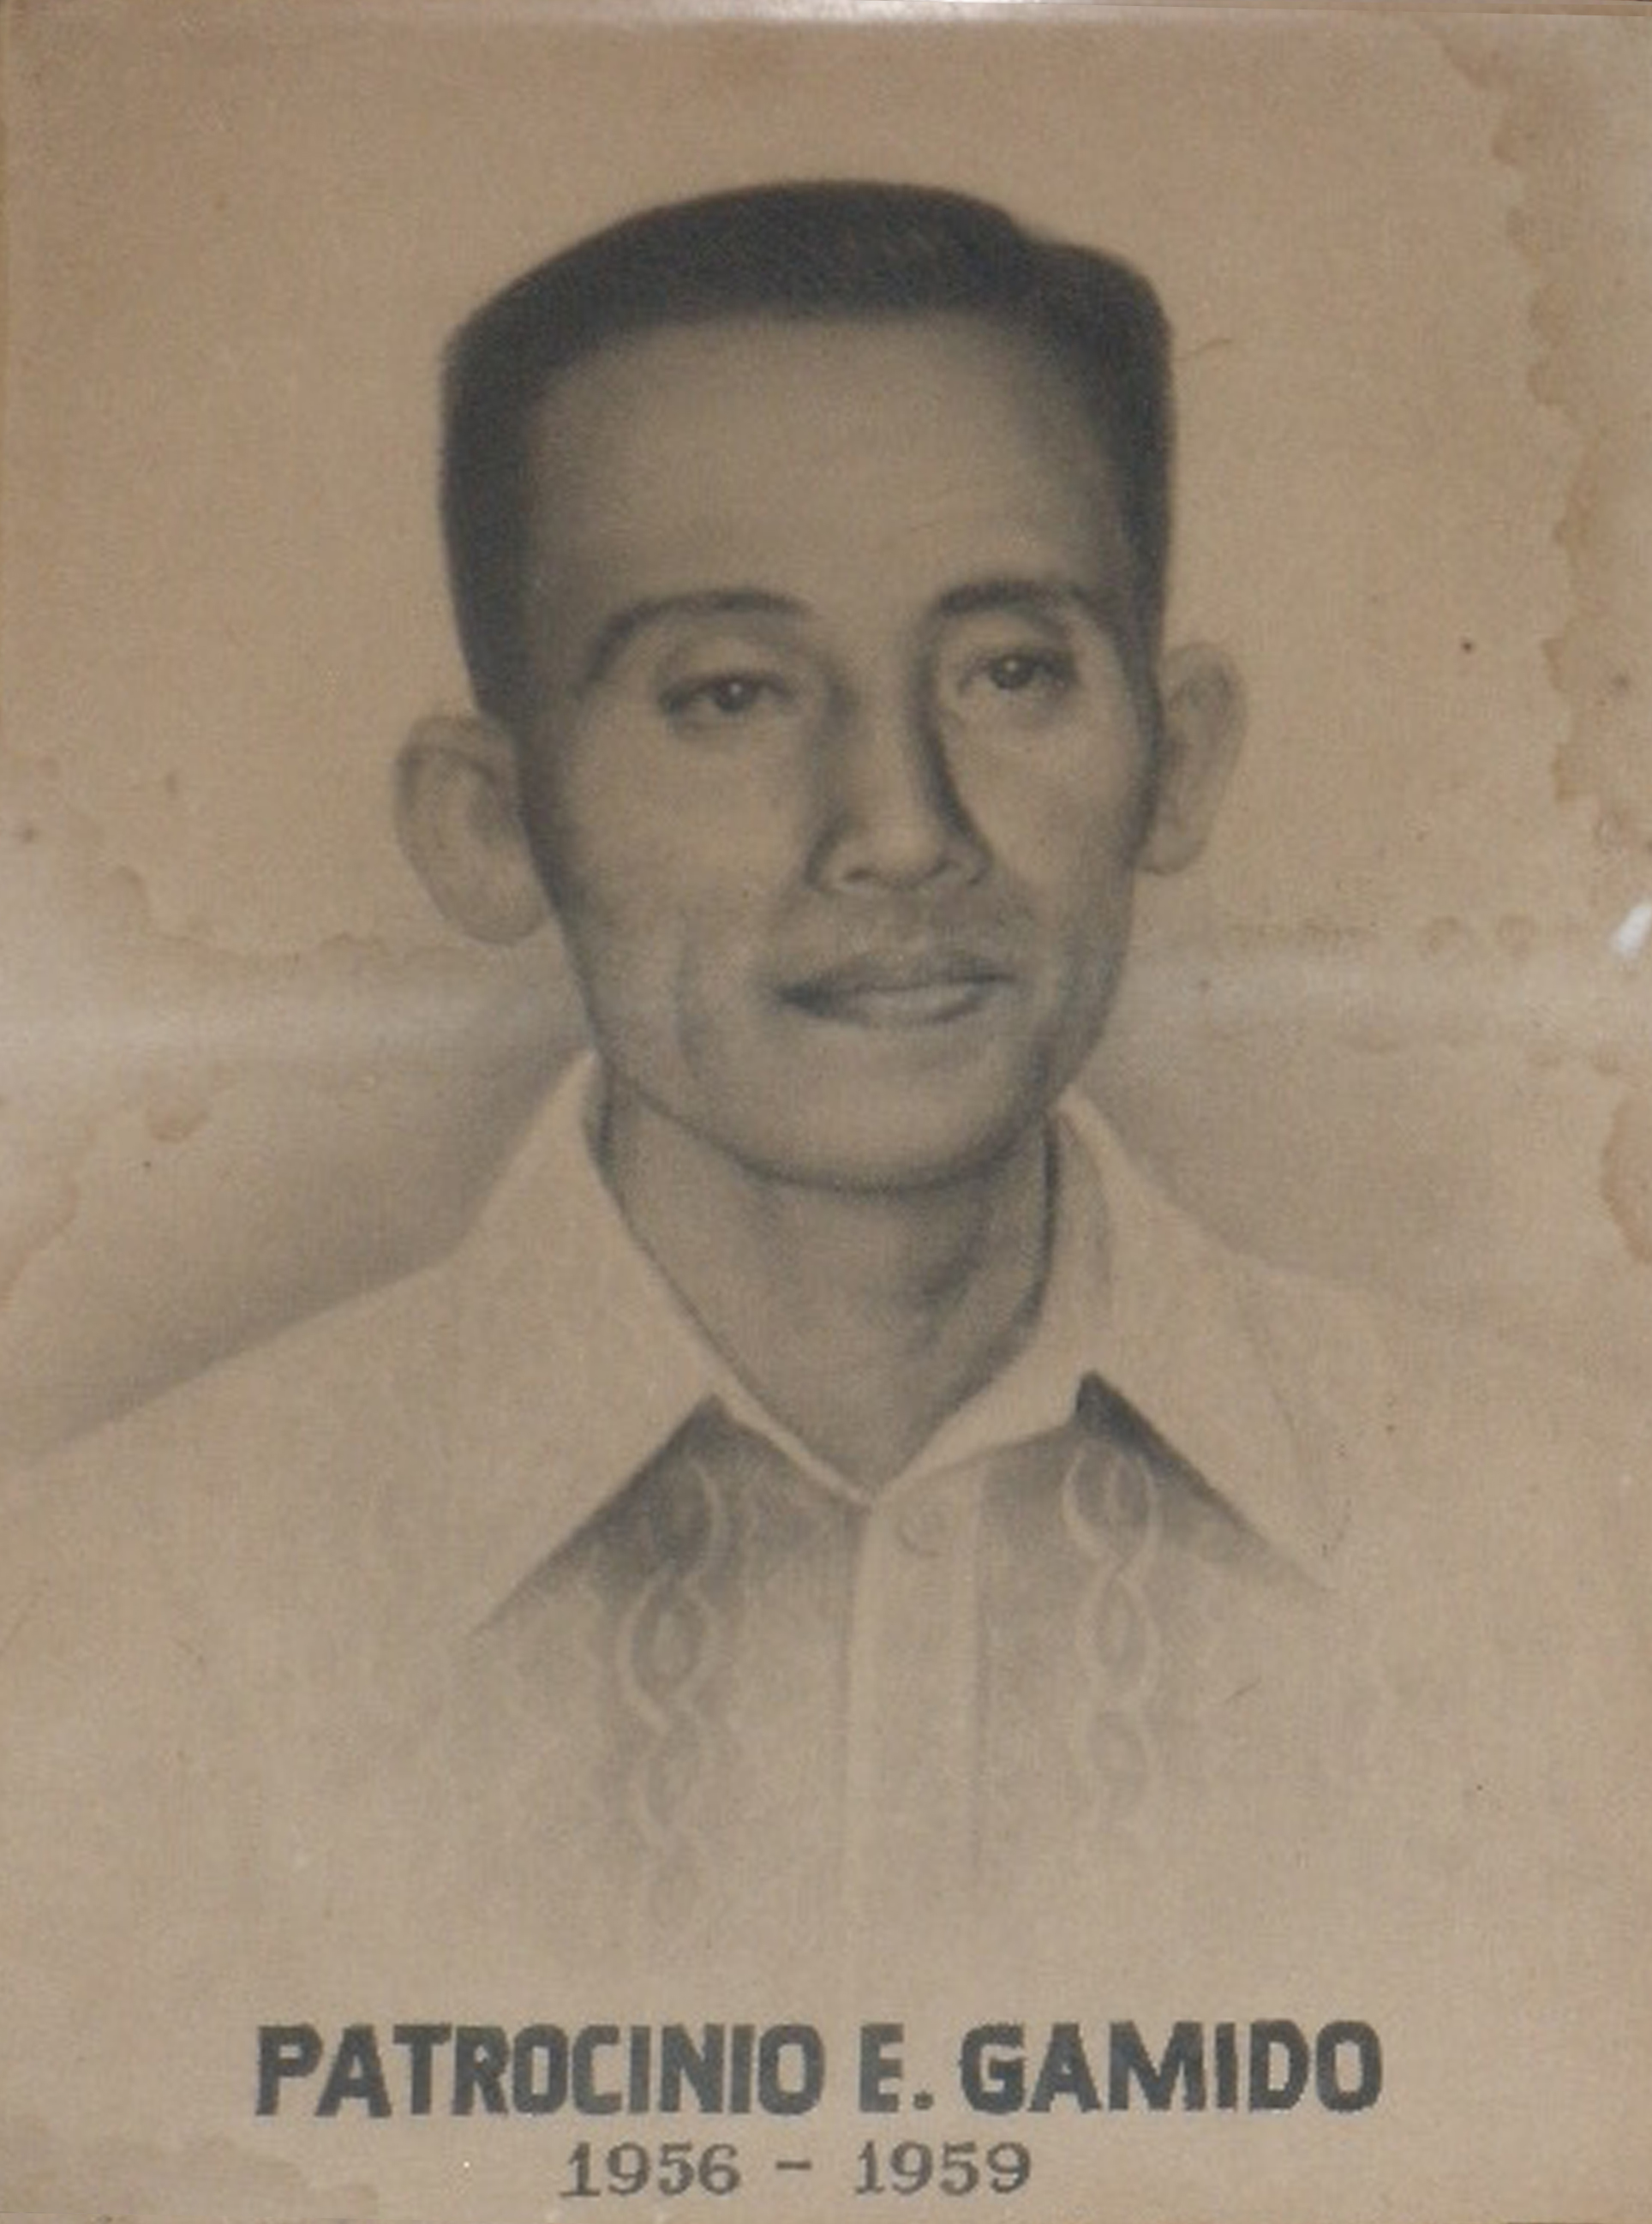 Mayor Patrocinio Gamido (1956-1959)